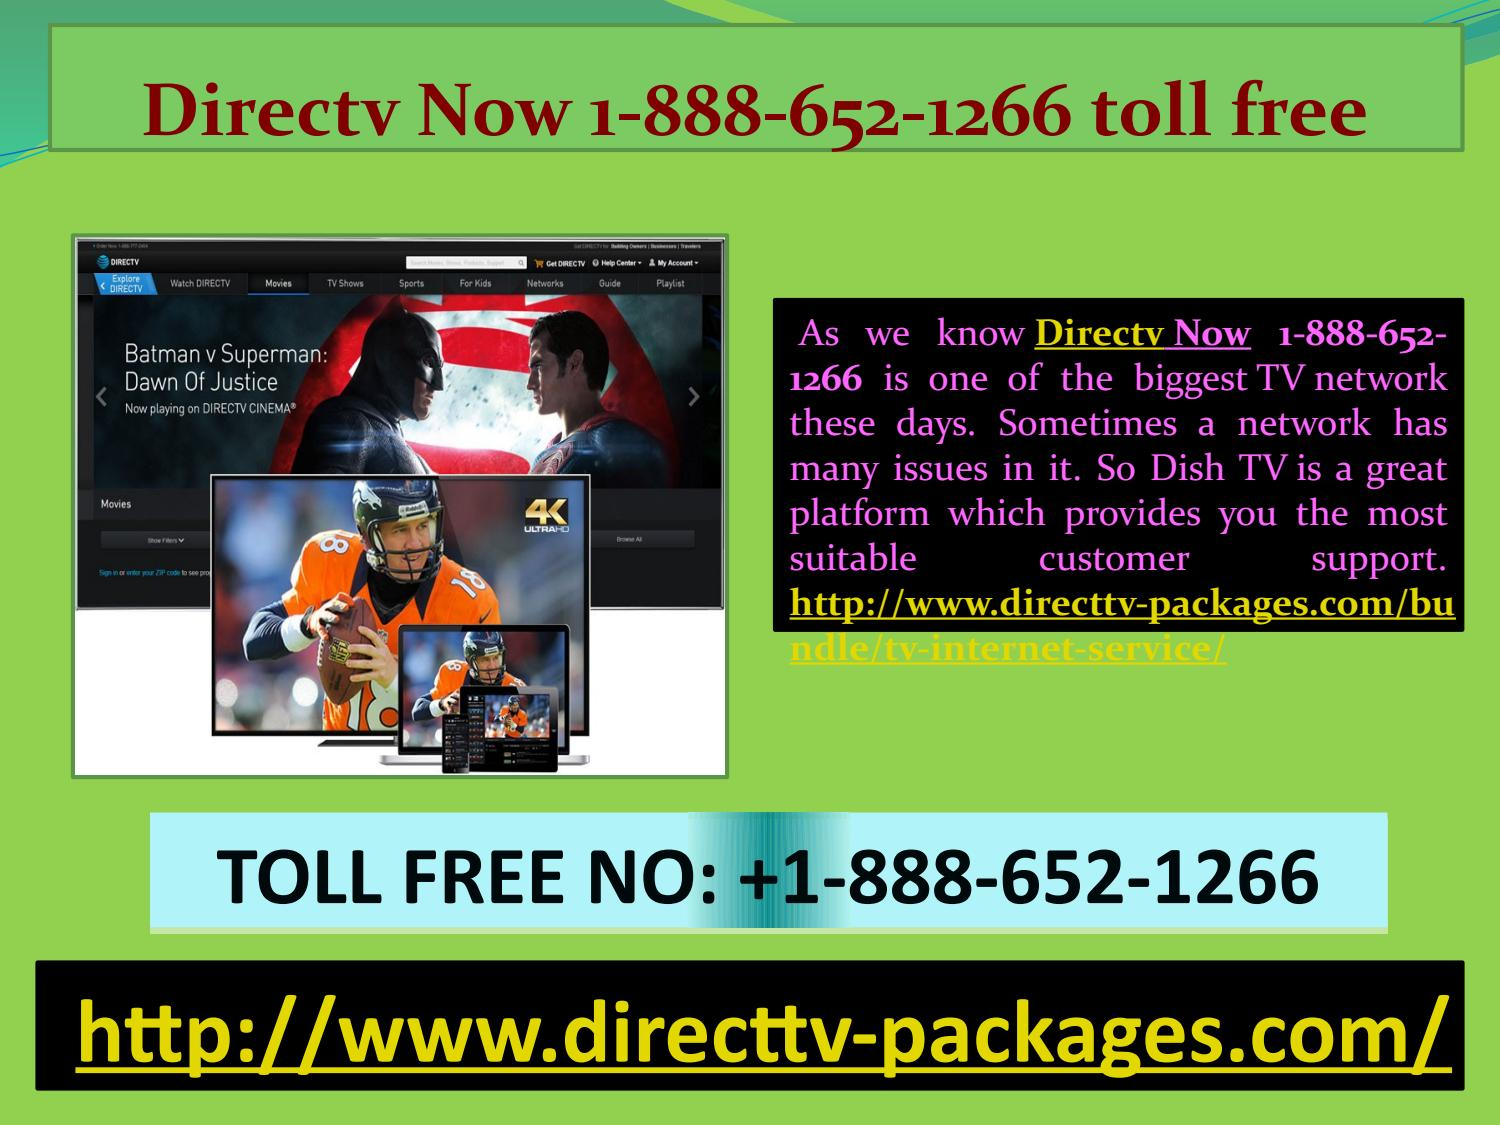 Does Directv Have Internet Service >> Can You Get Internet Through Directv Com 1 888 652 1266 By